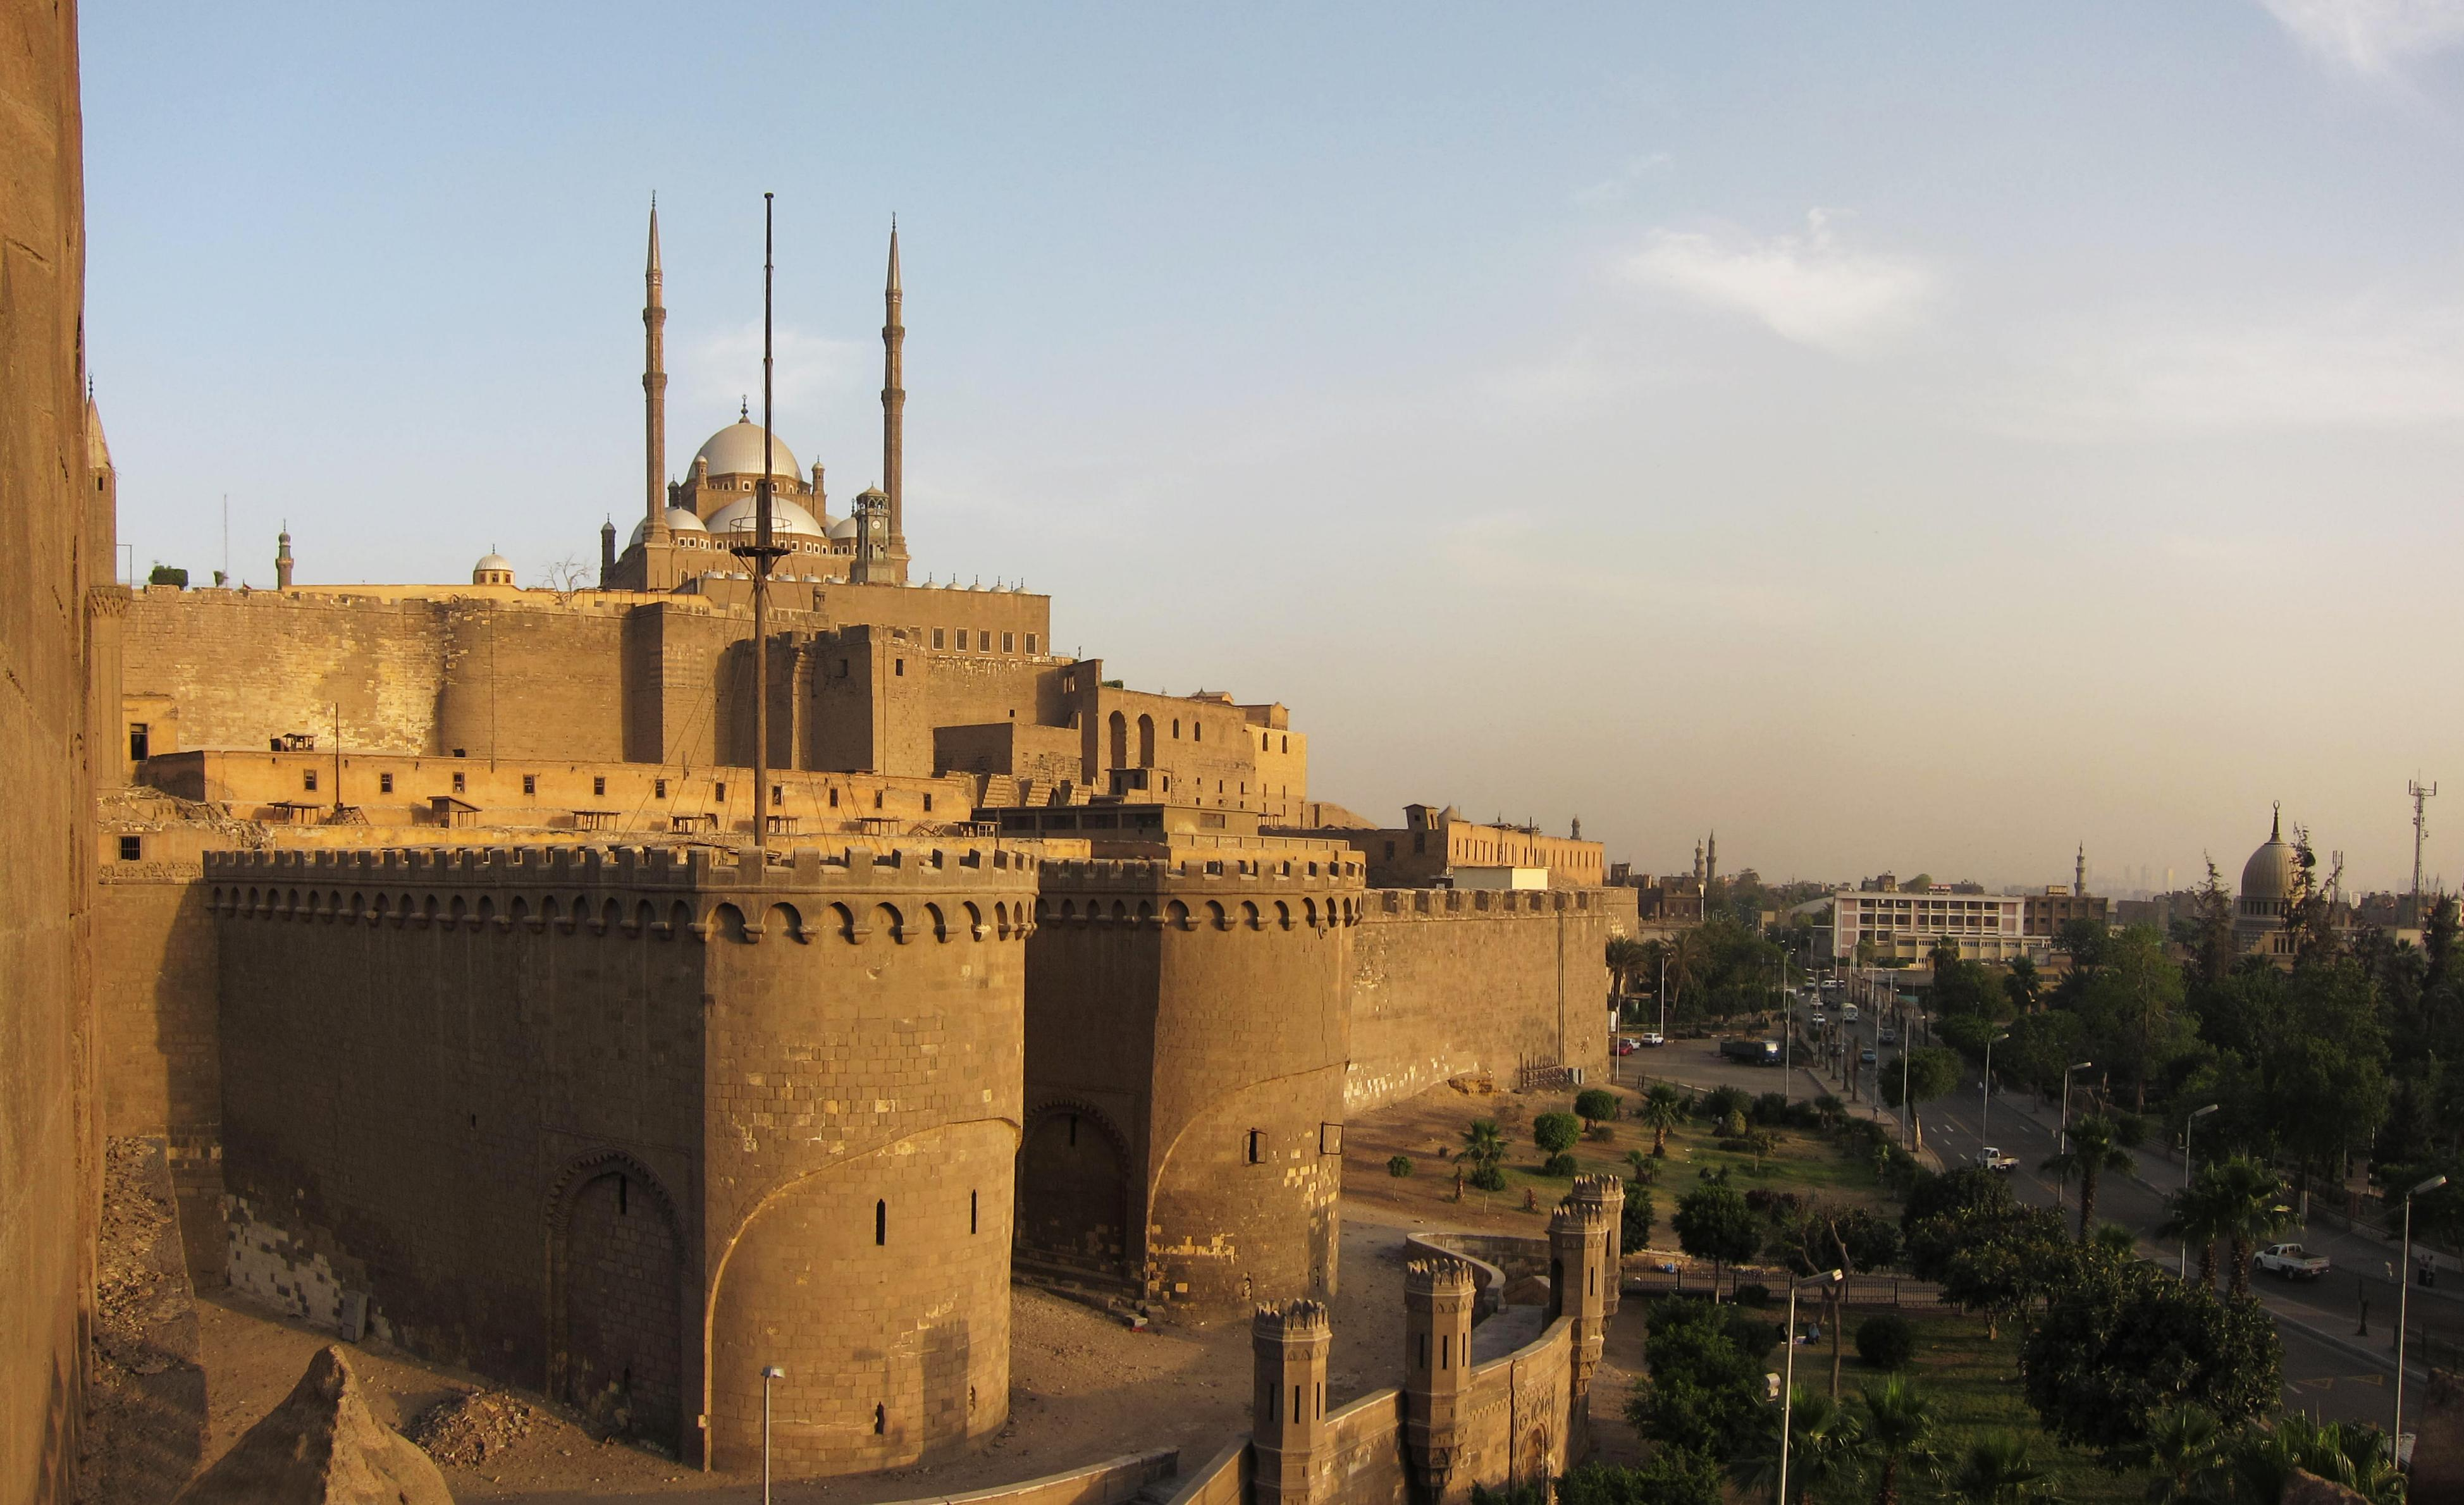 cairo citadel military wiki fandom powered by wikia. Black Bedroom Furniture Sets. Home Design Ideas